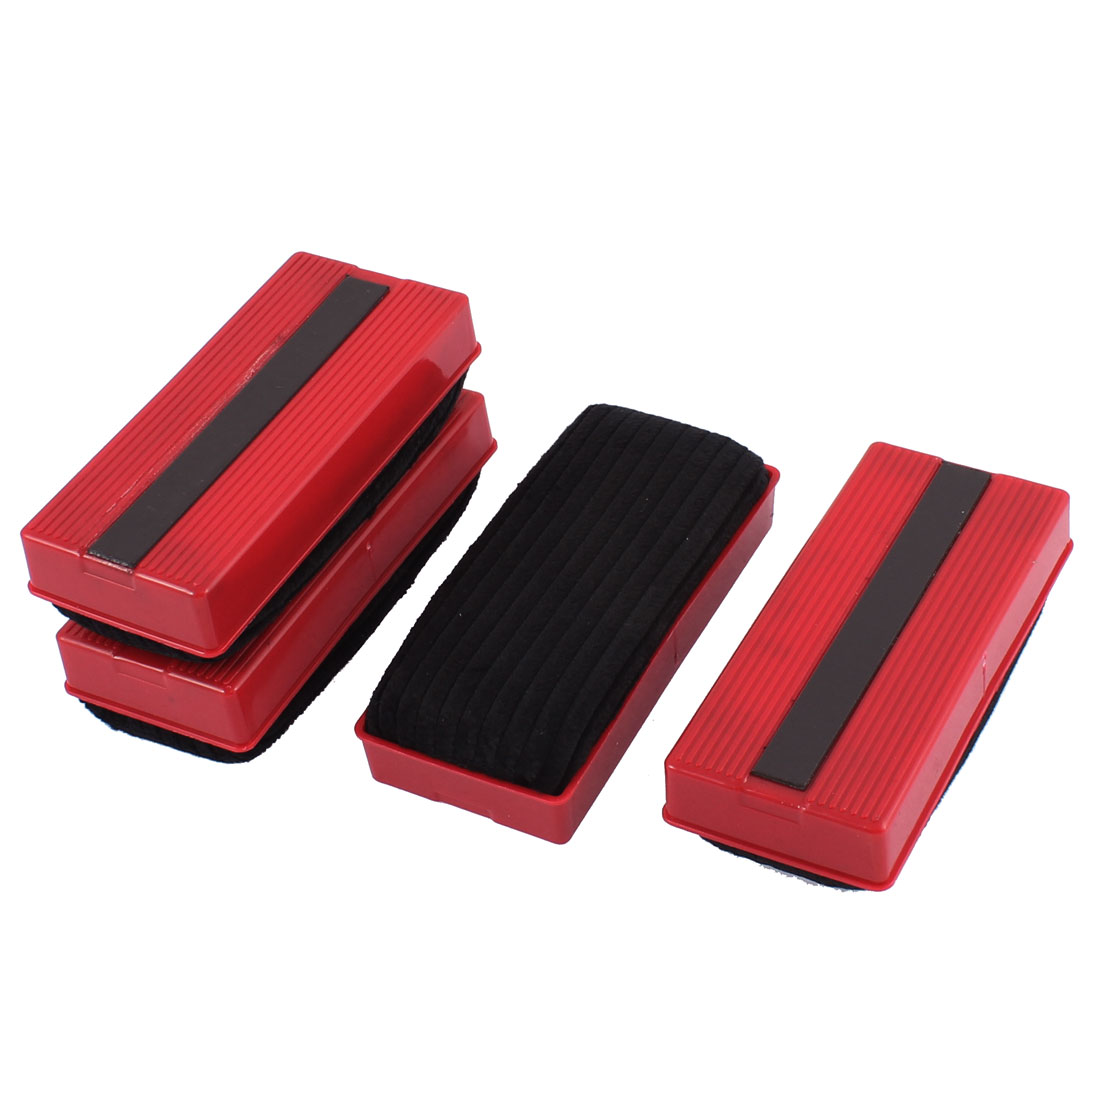 School Teaching Plastic Shell Magnetic Blackboard Eraser Red Black 4 Pcs